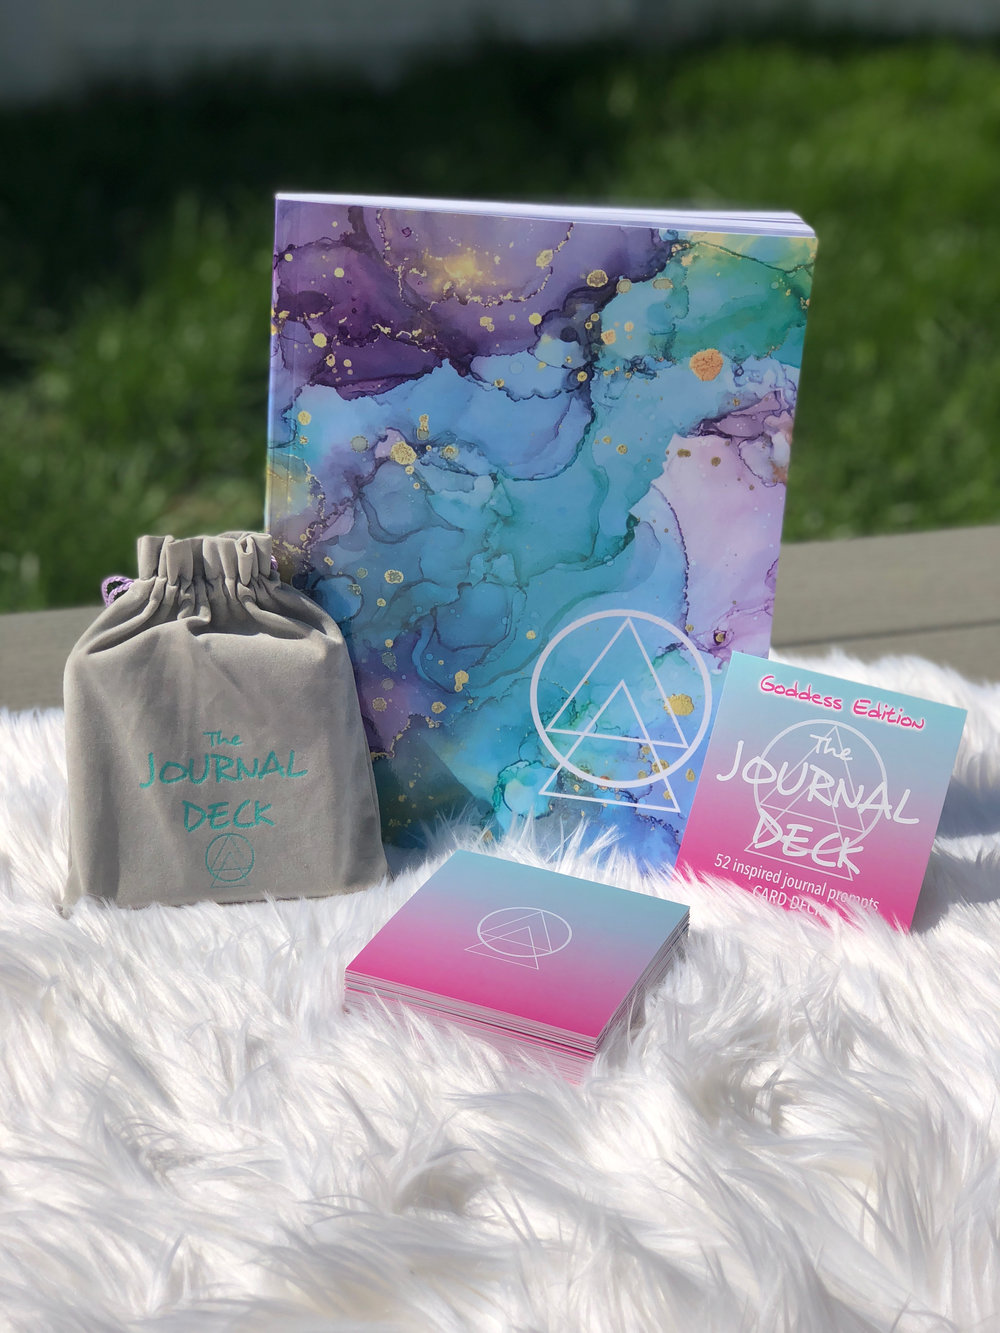 PRE-ORDERs end june 8th - Companion Journal + Goddess Edition Deck $45